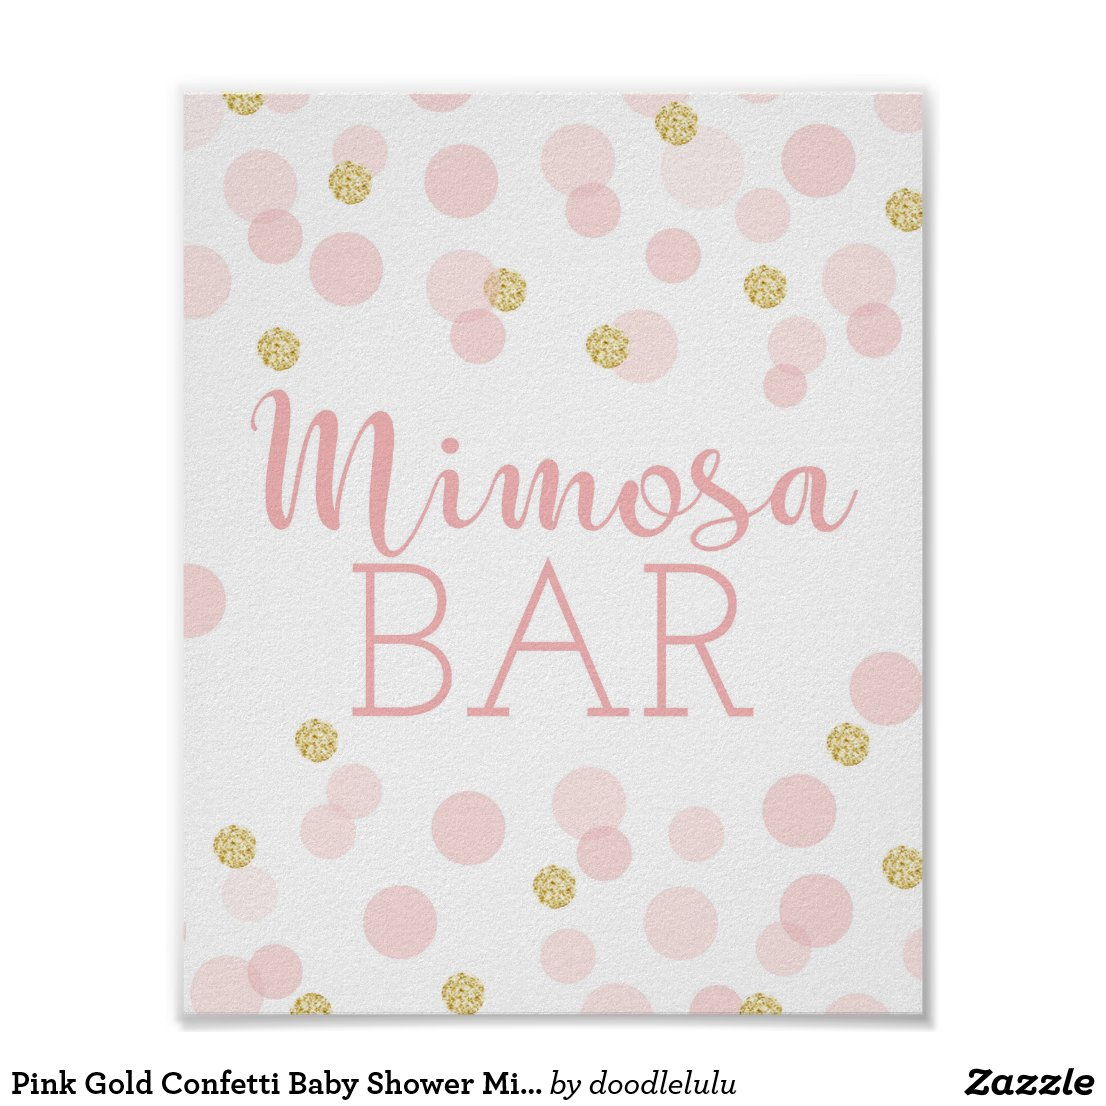 Pink Gold Confetti Baby Shower Mimosa Bar Sign